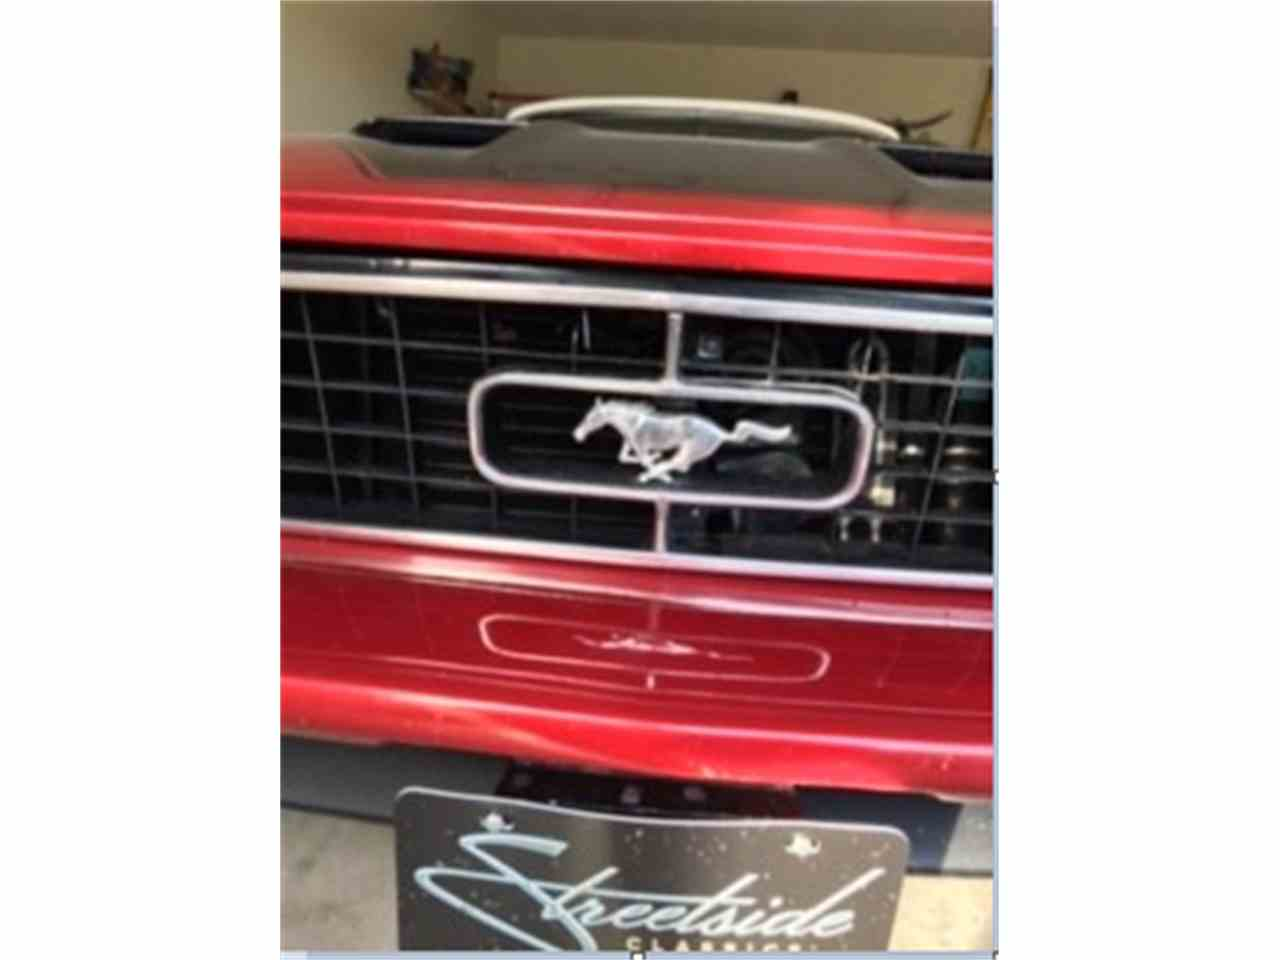 Large Picture of '73 Mustang (Roush) located in Mississippi Offered by a Private Seller - LRQU